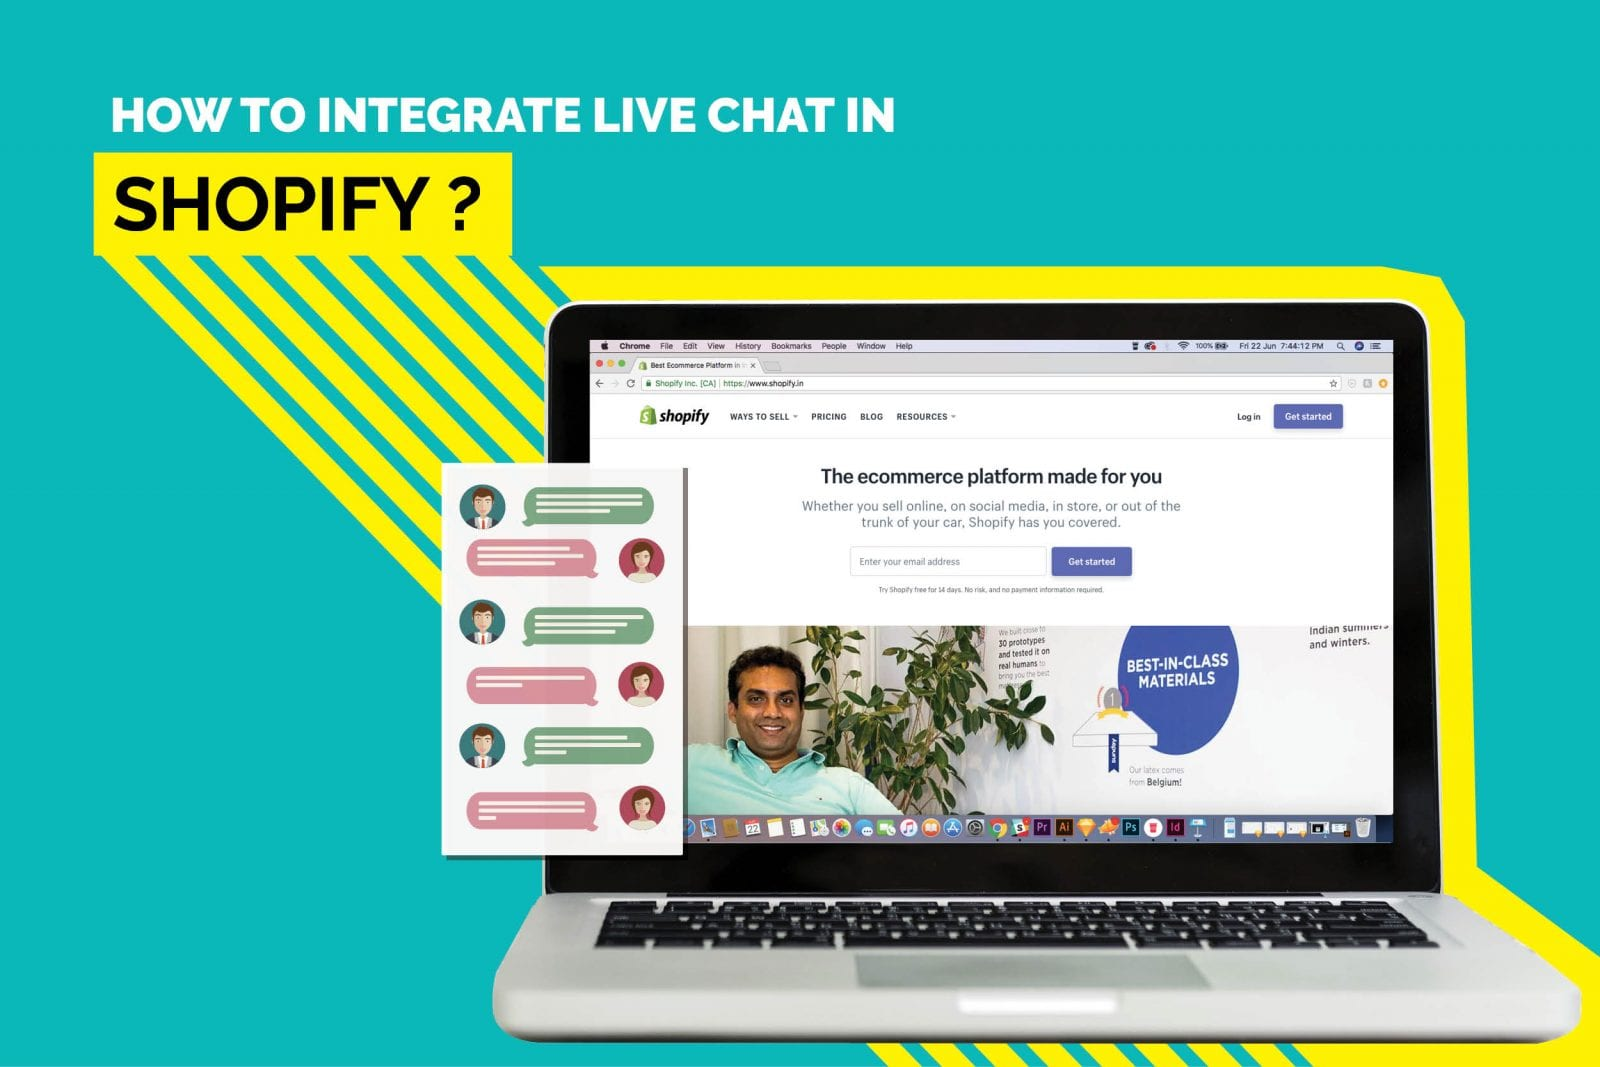 live chat in shopify